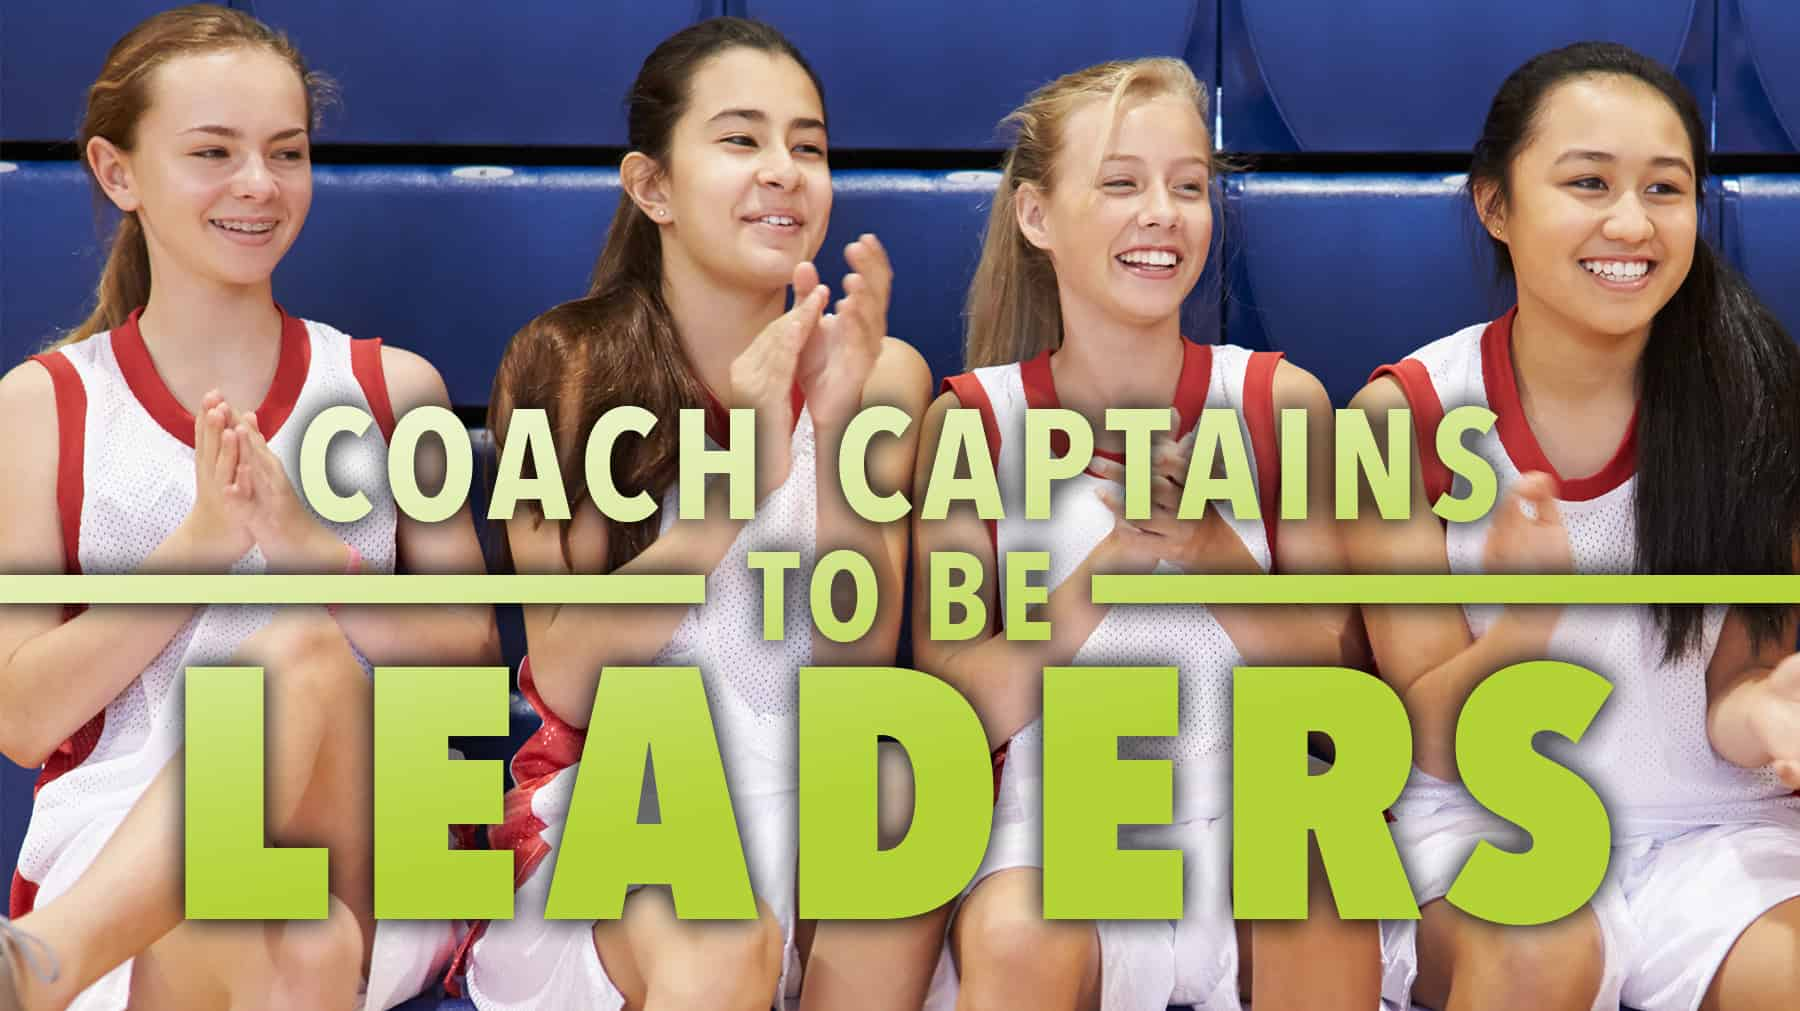 Coaching Captains To Be Leaders